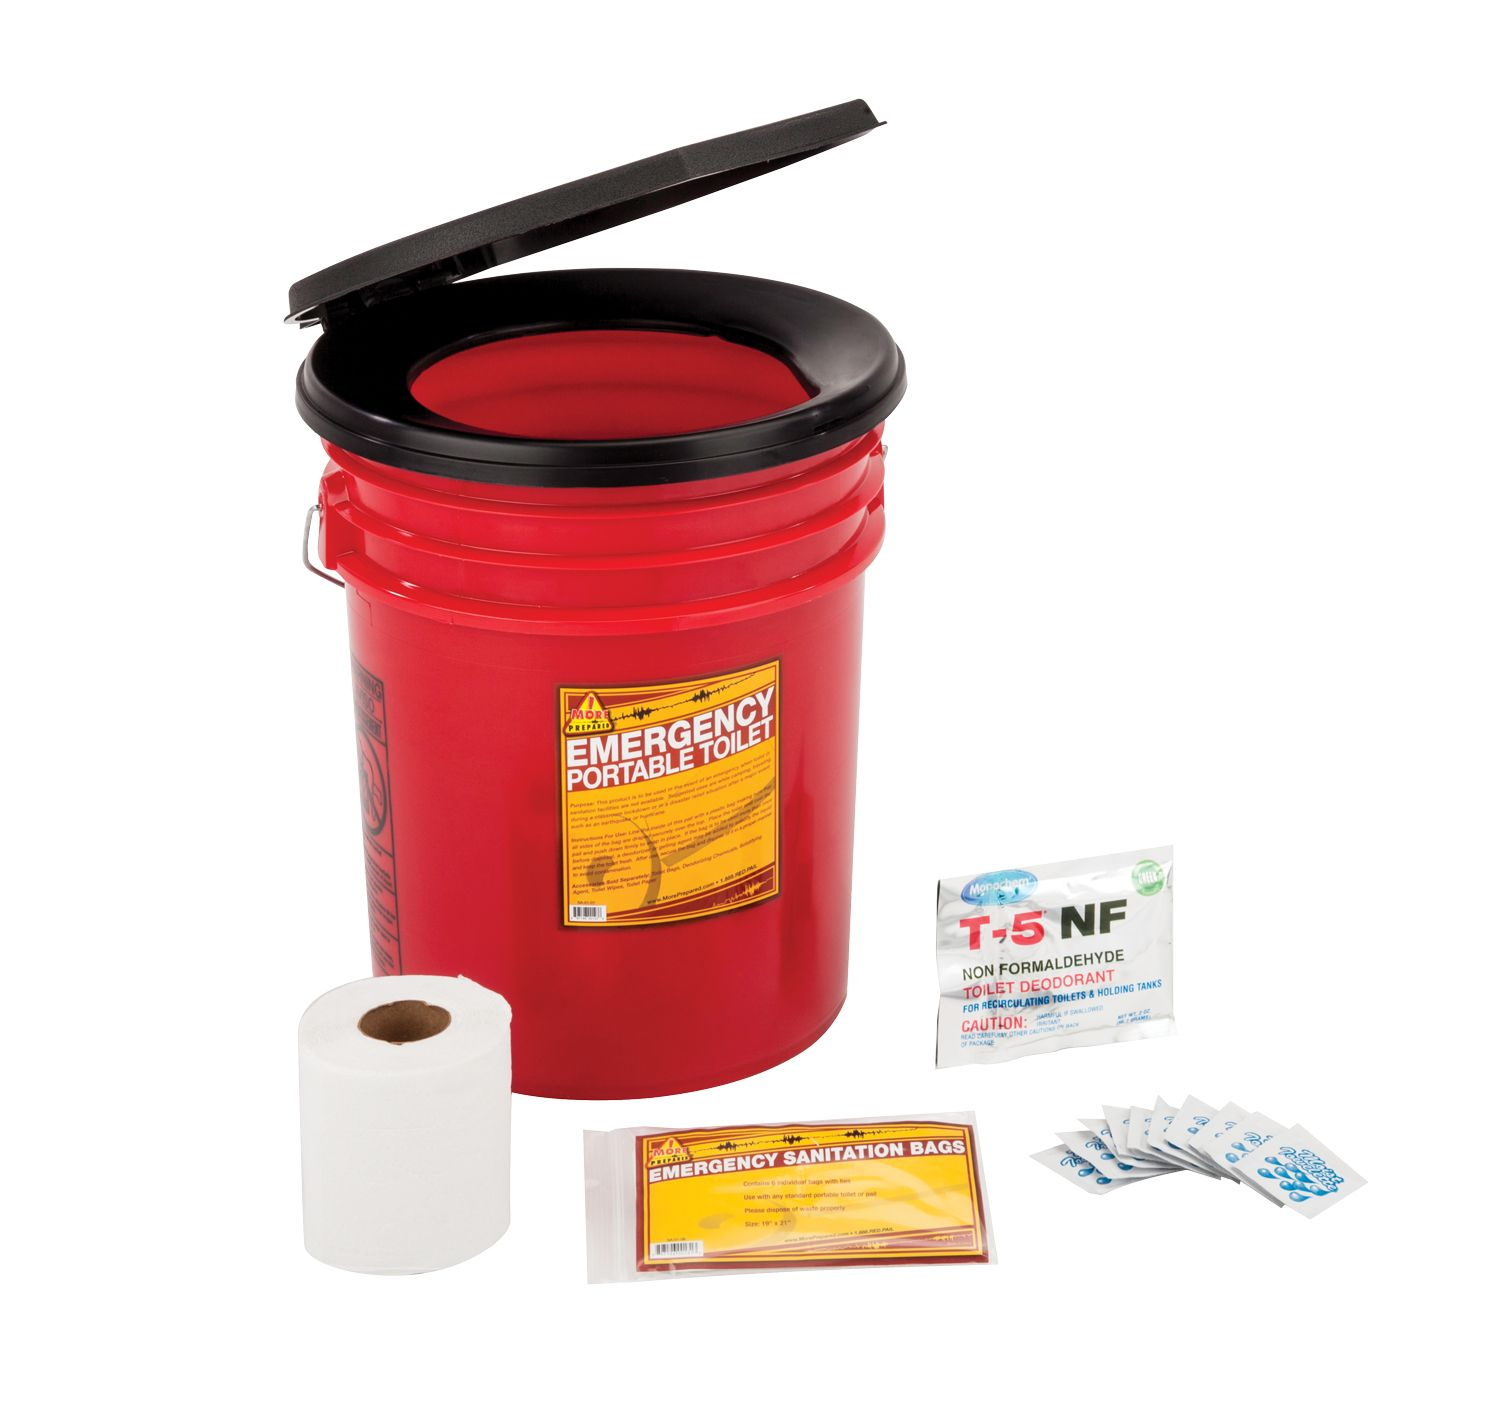 Sturdy 5 Gallon Bucket Toilet With A Snap On Toilet Seat This Is